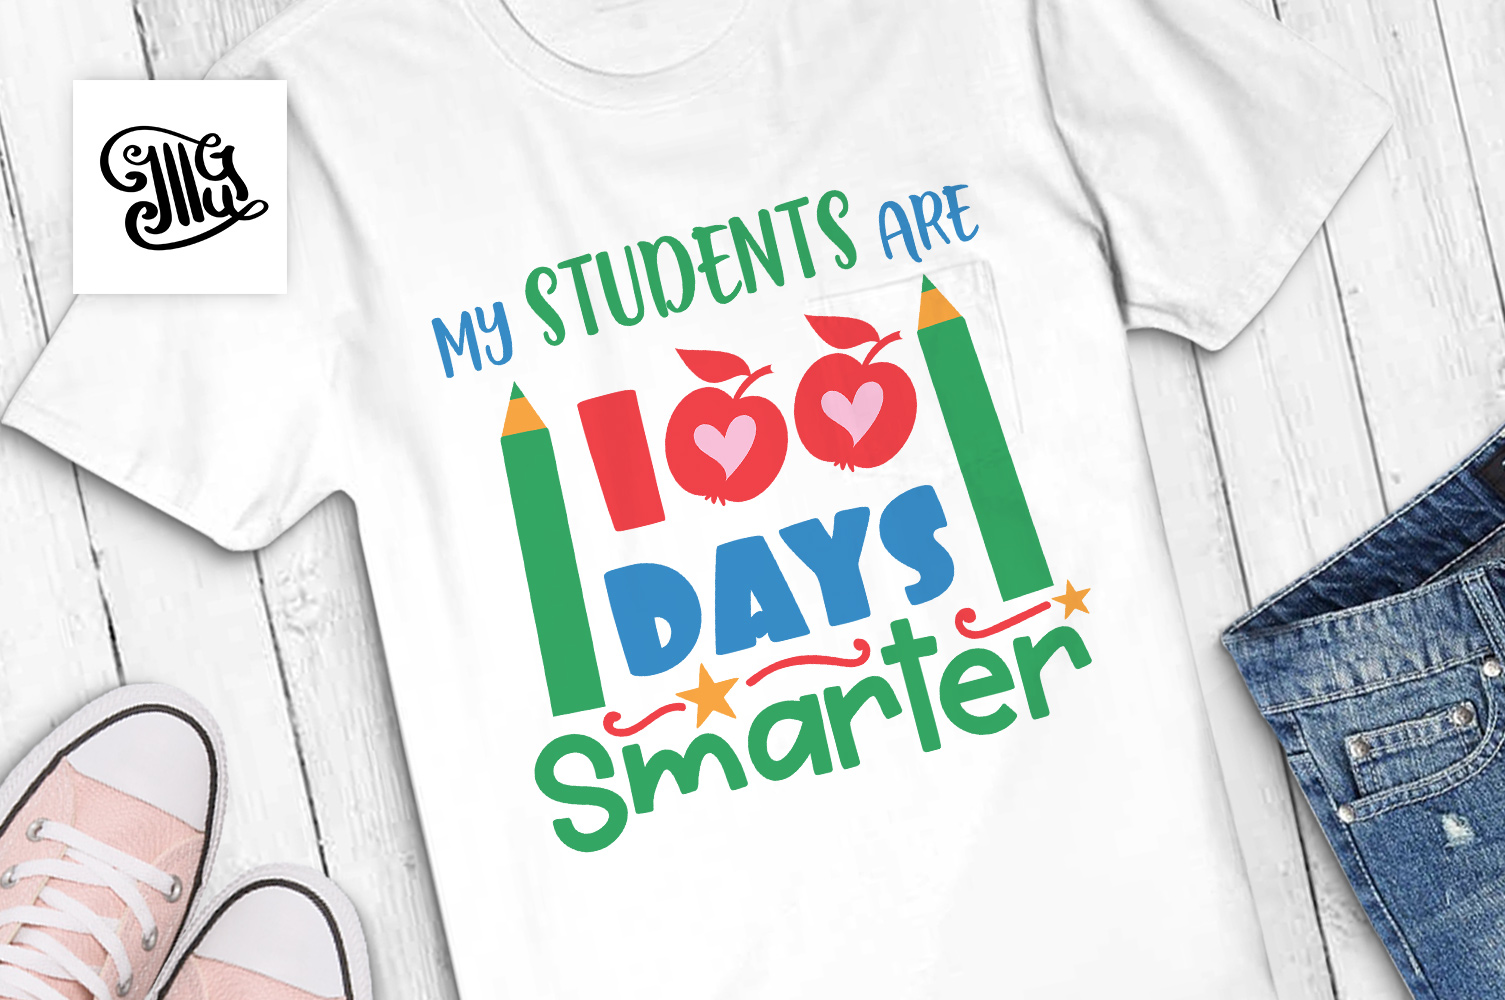 100 days of school for teacher svg example image 1